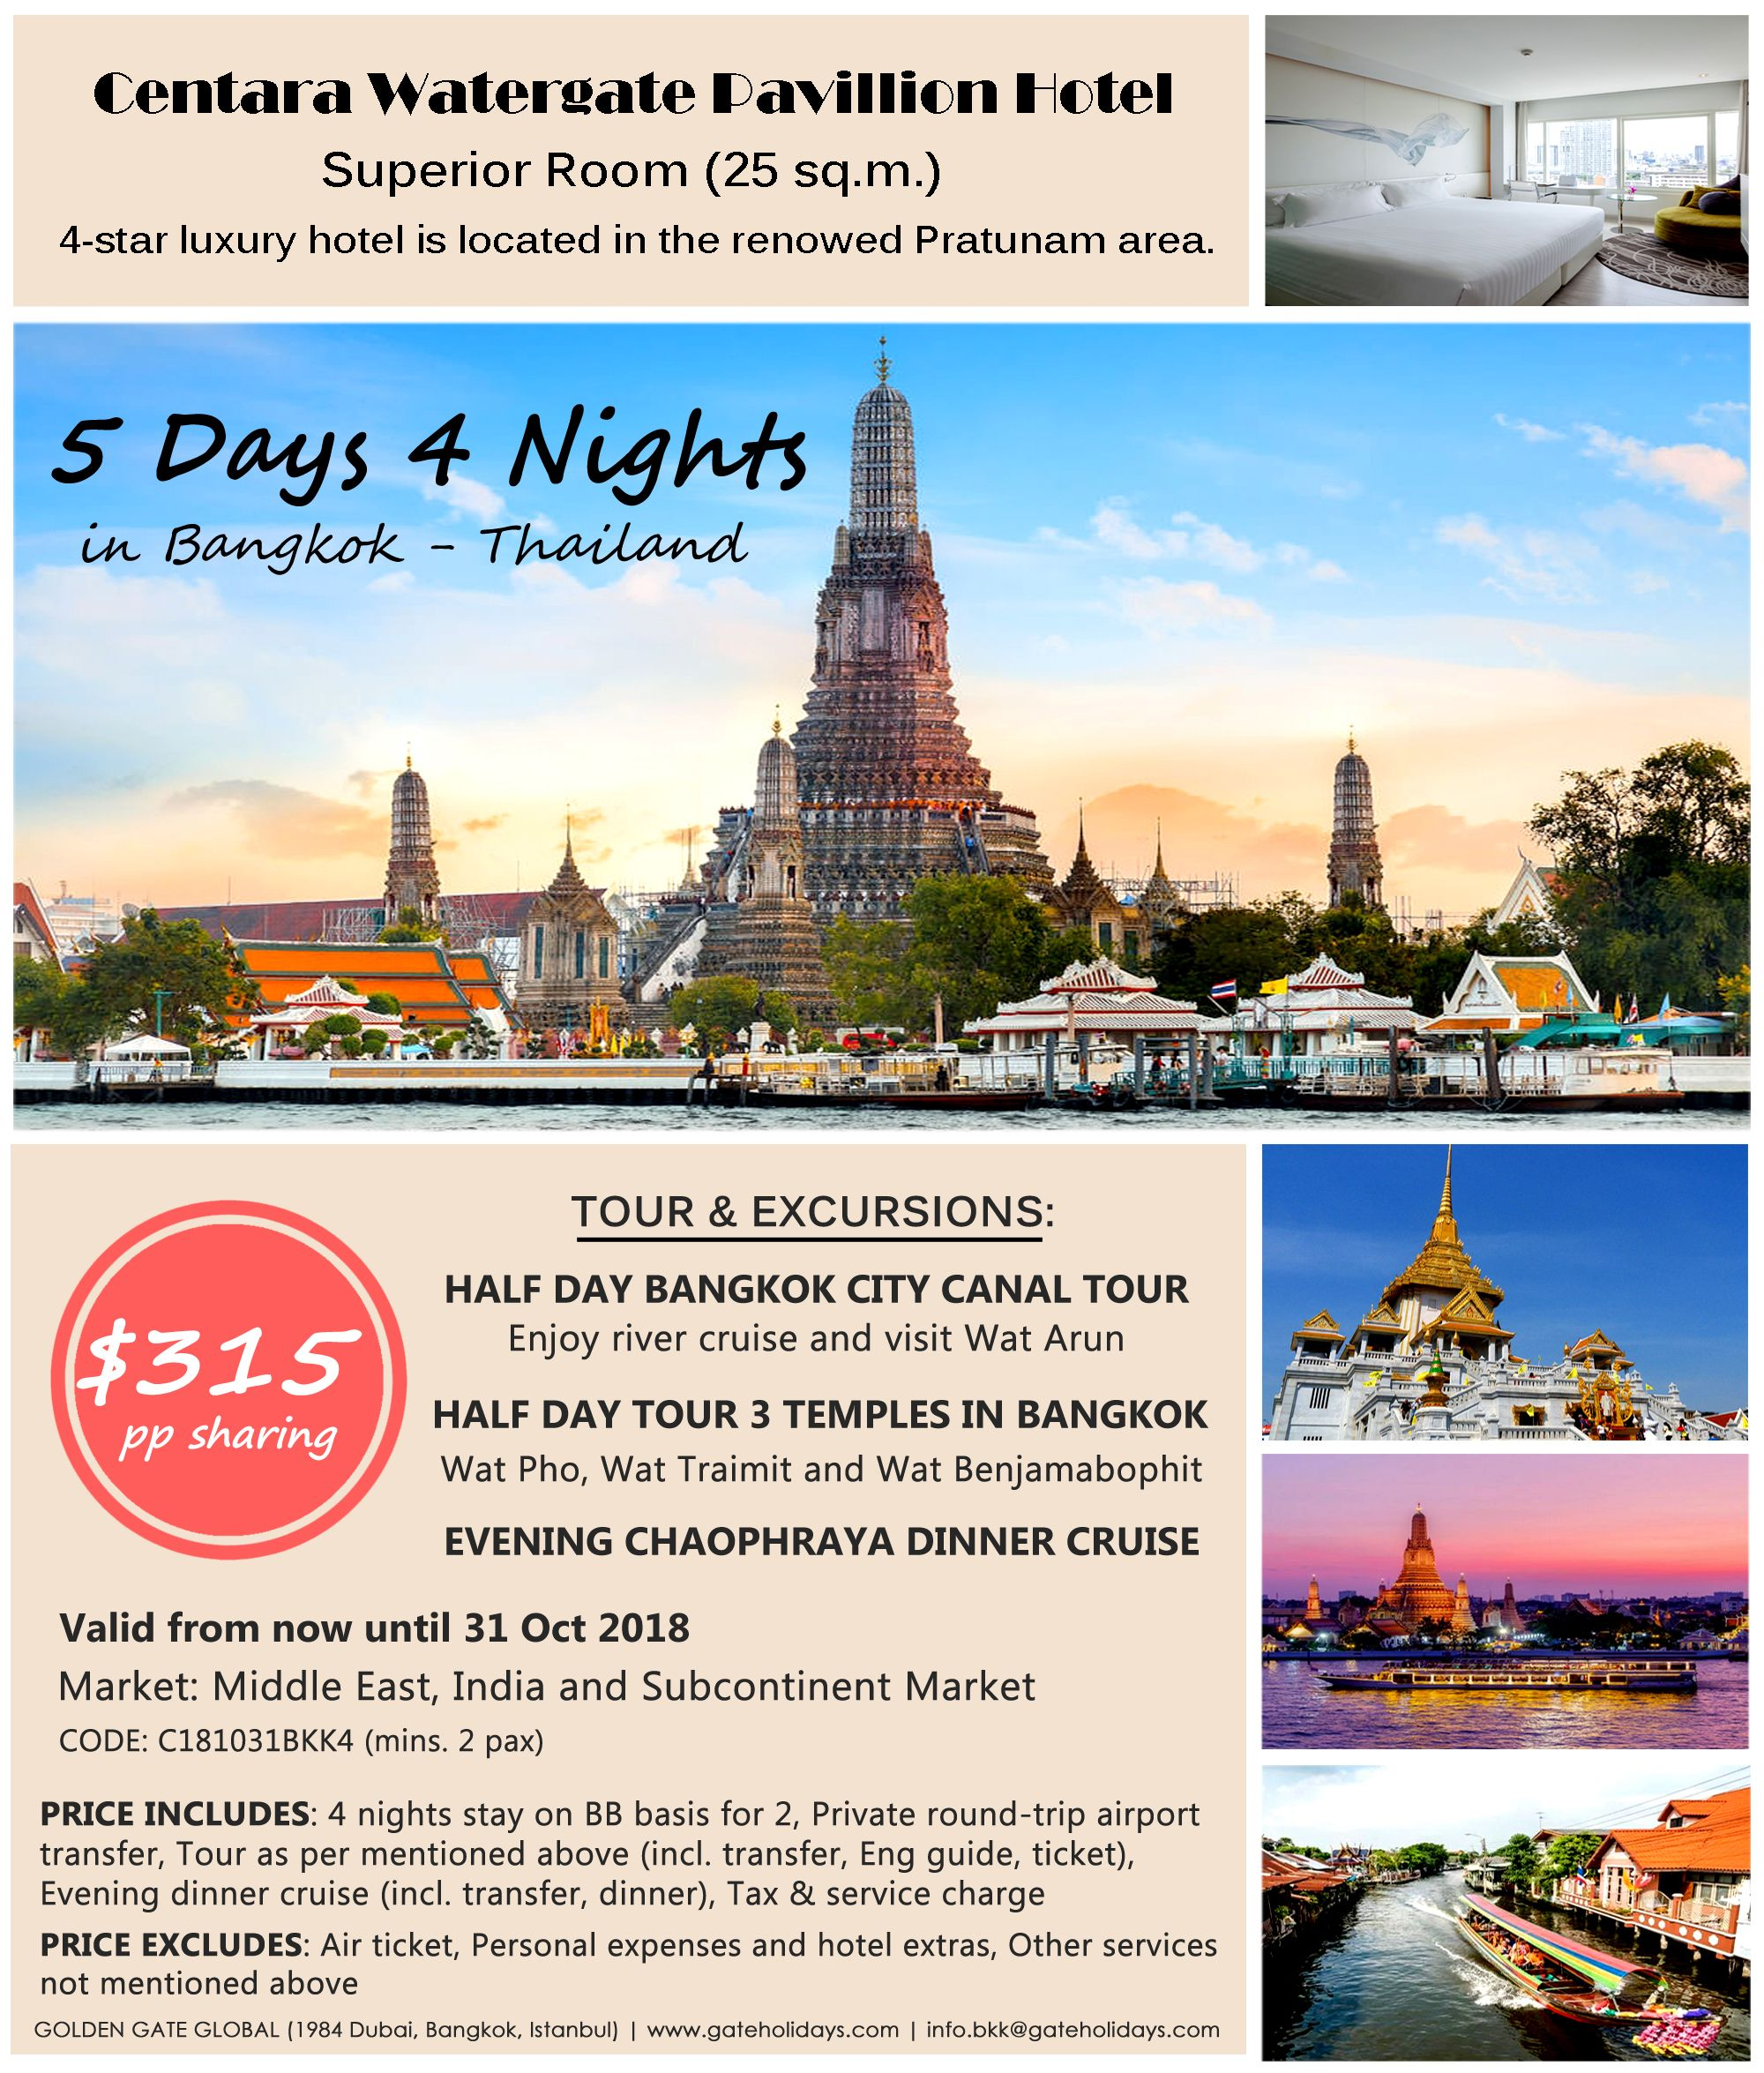 Explore Bangkok, Thailand for 5 days 4 nights and stay at